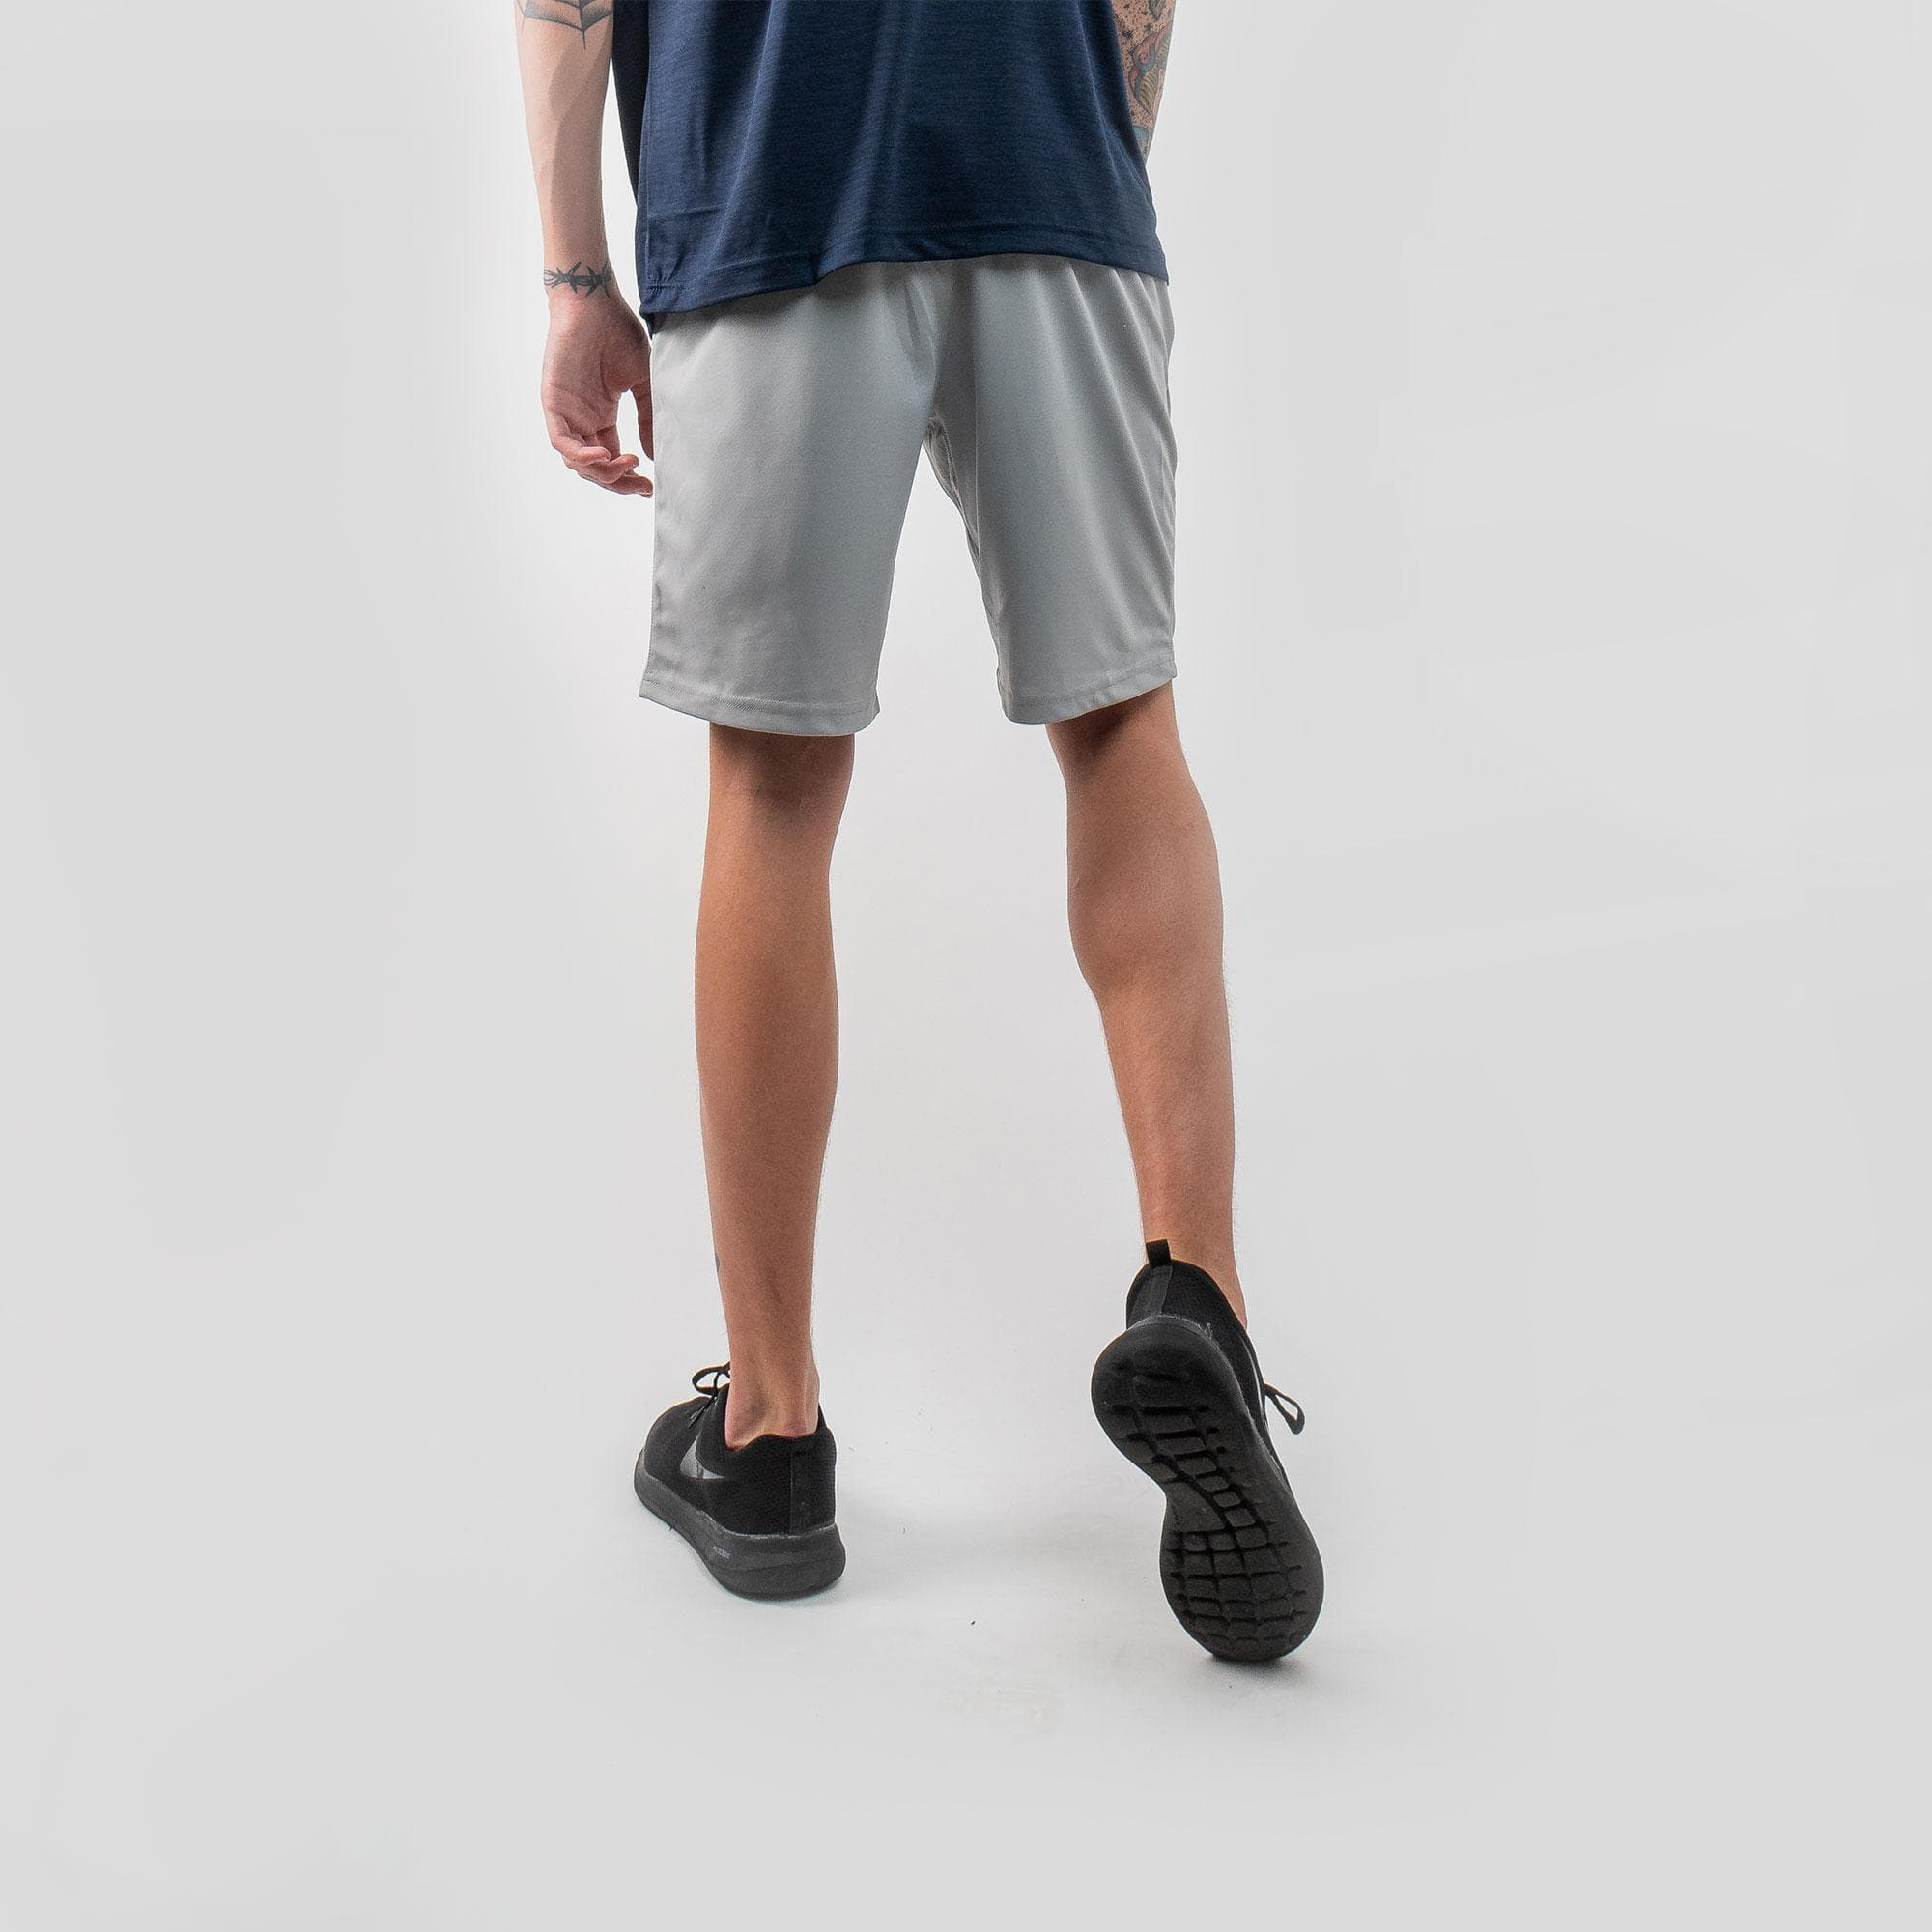 Dri-Fit Training Sports Shorts - Grey/ Navy/ Black 65640